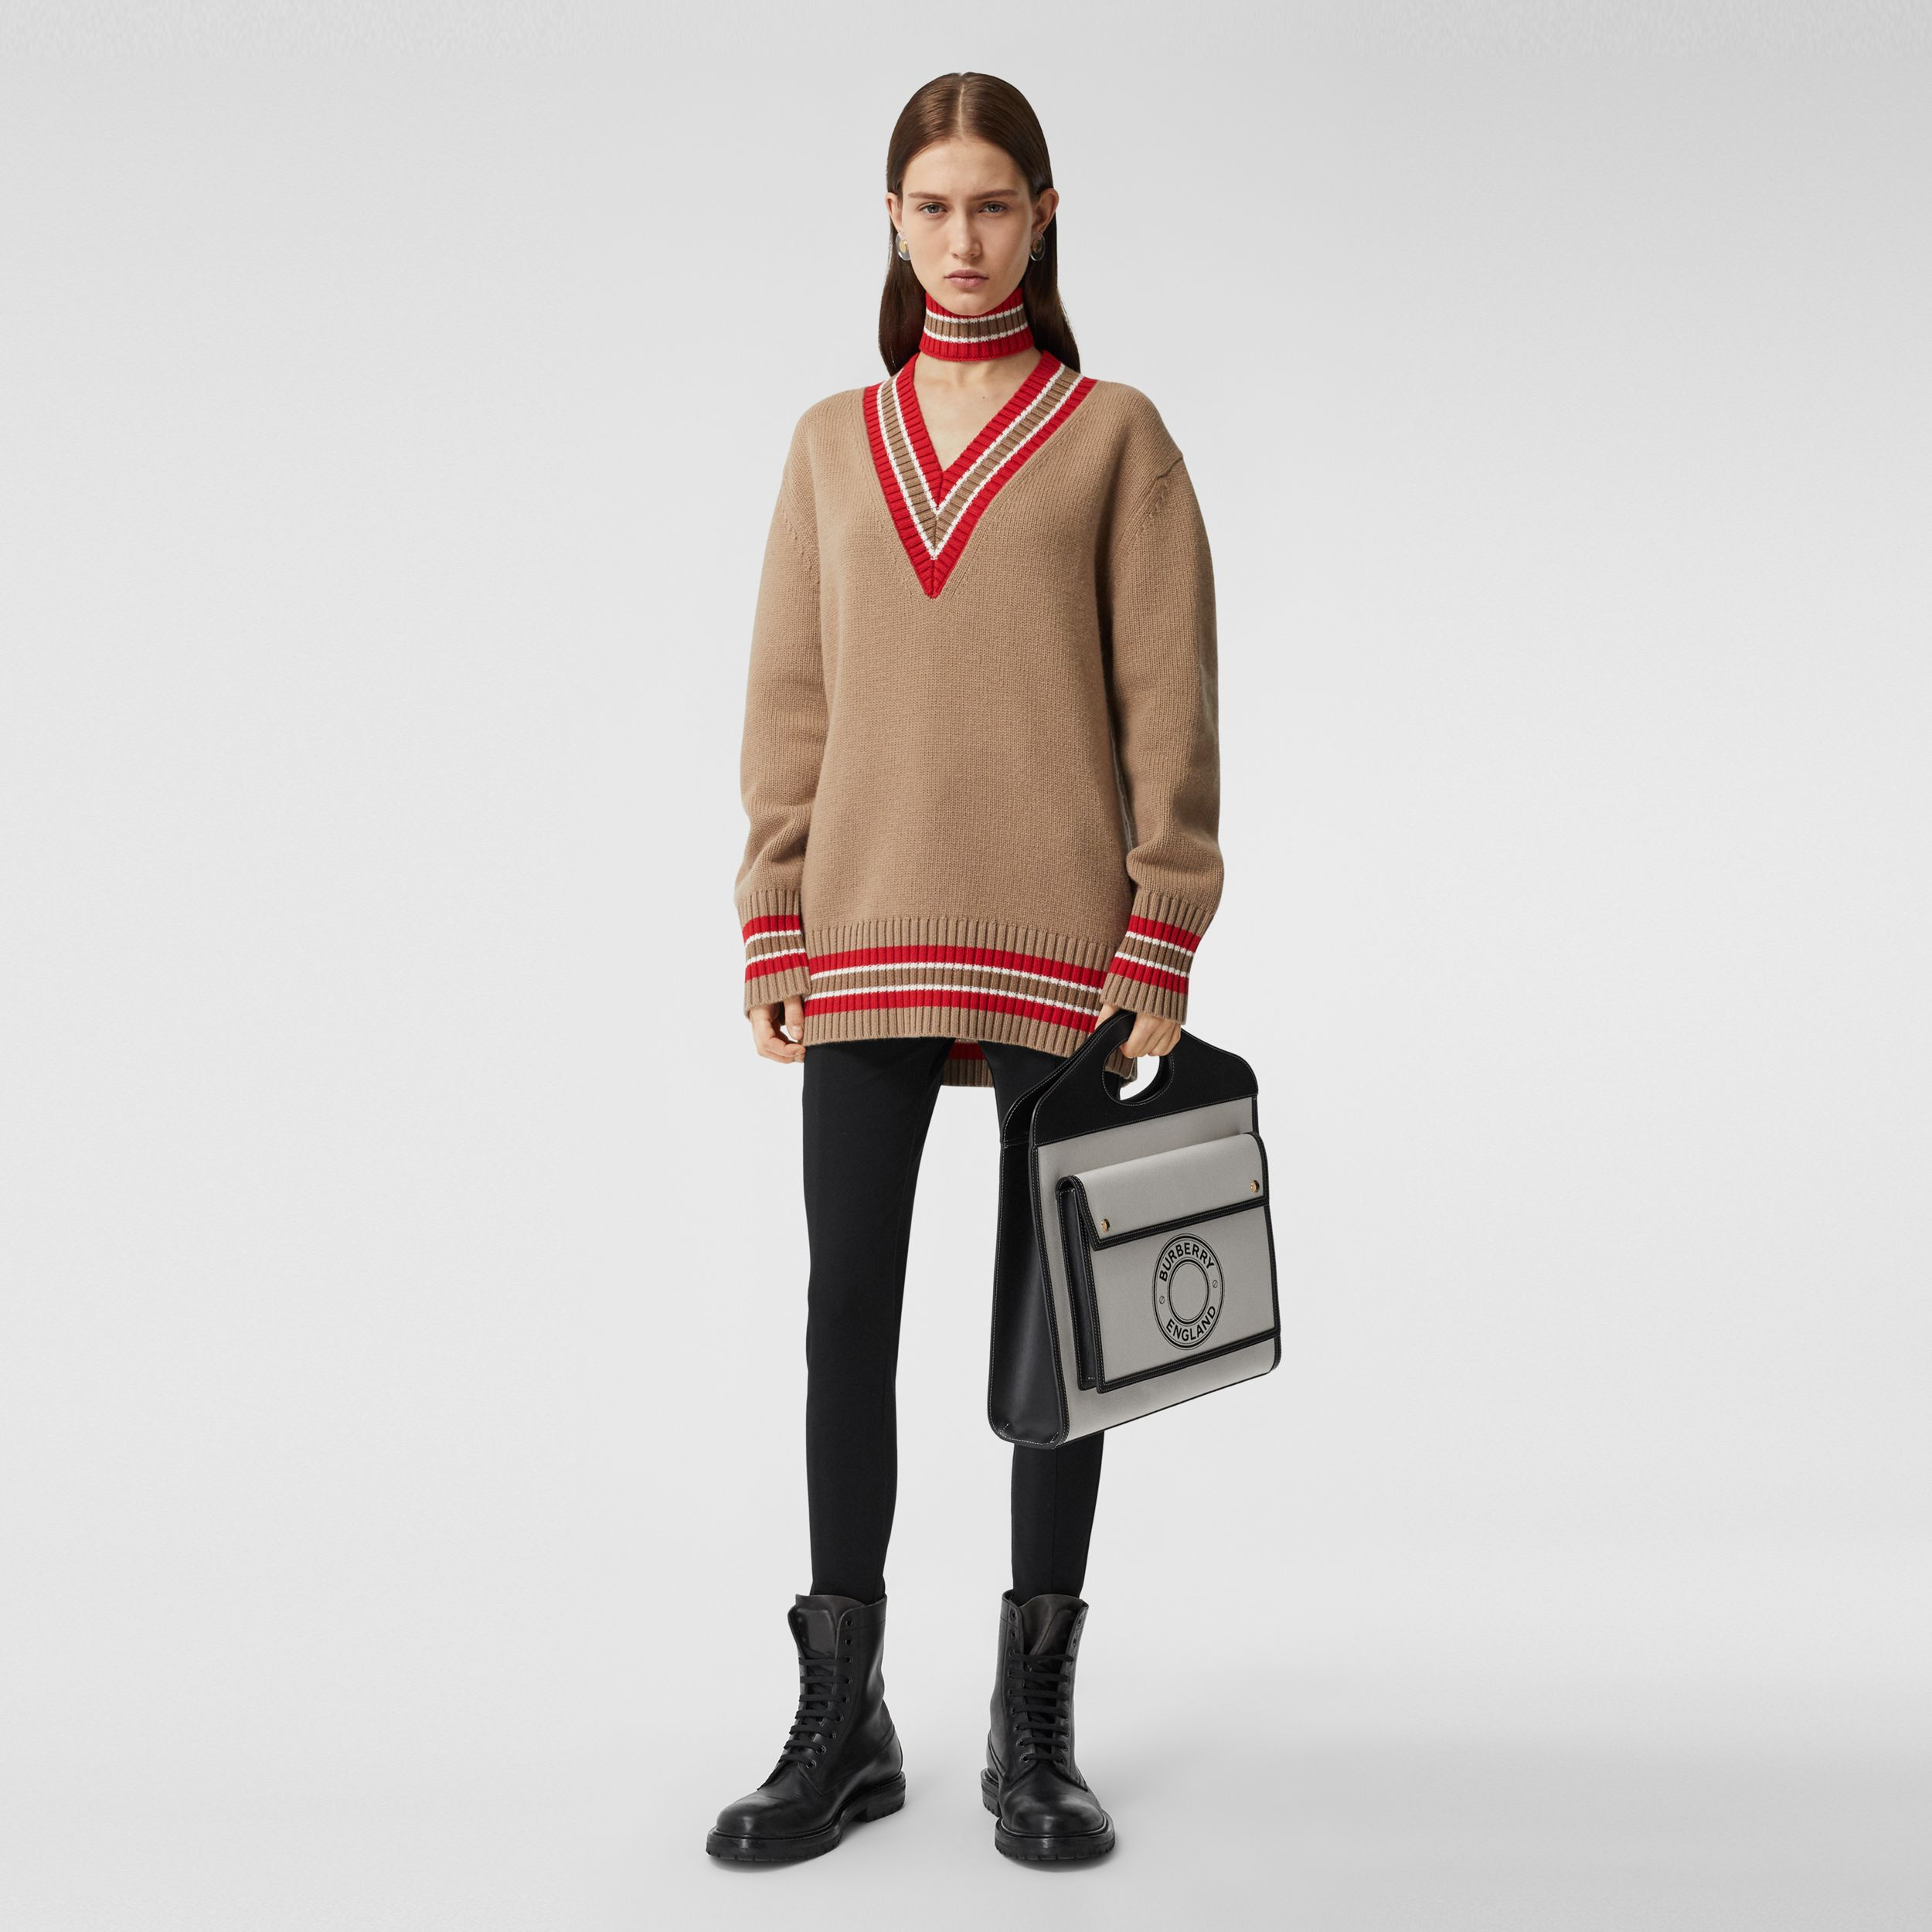 Wool Oversized Cricket Sweater in Camel - Women | Burberry Hong Kong S.A.R. - 1